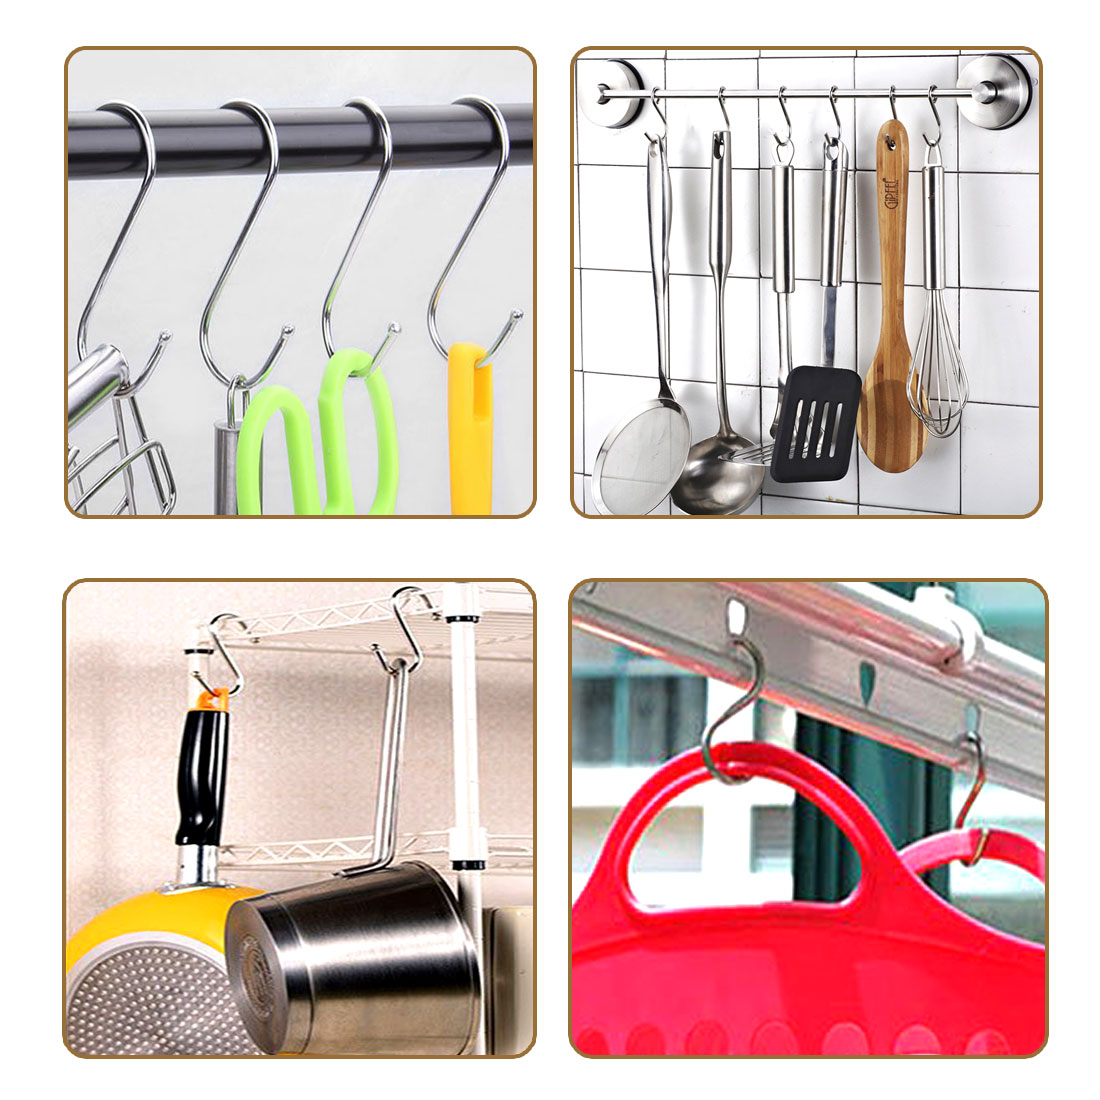 "Metal S Hooks 3.15"" S Shaped Hook Hangers for Kitchen Bathroom Bedroom Storage Room Office Outdoor Multiple Uses 20pcs - image 1 de 4"